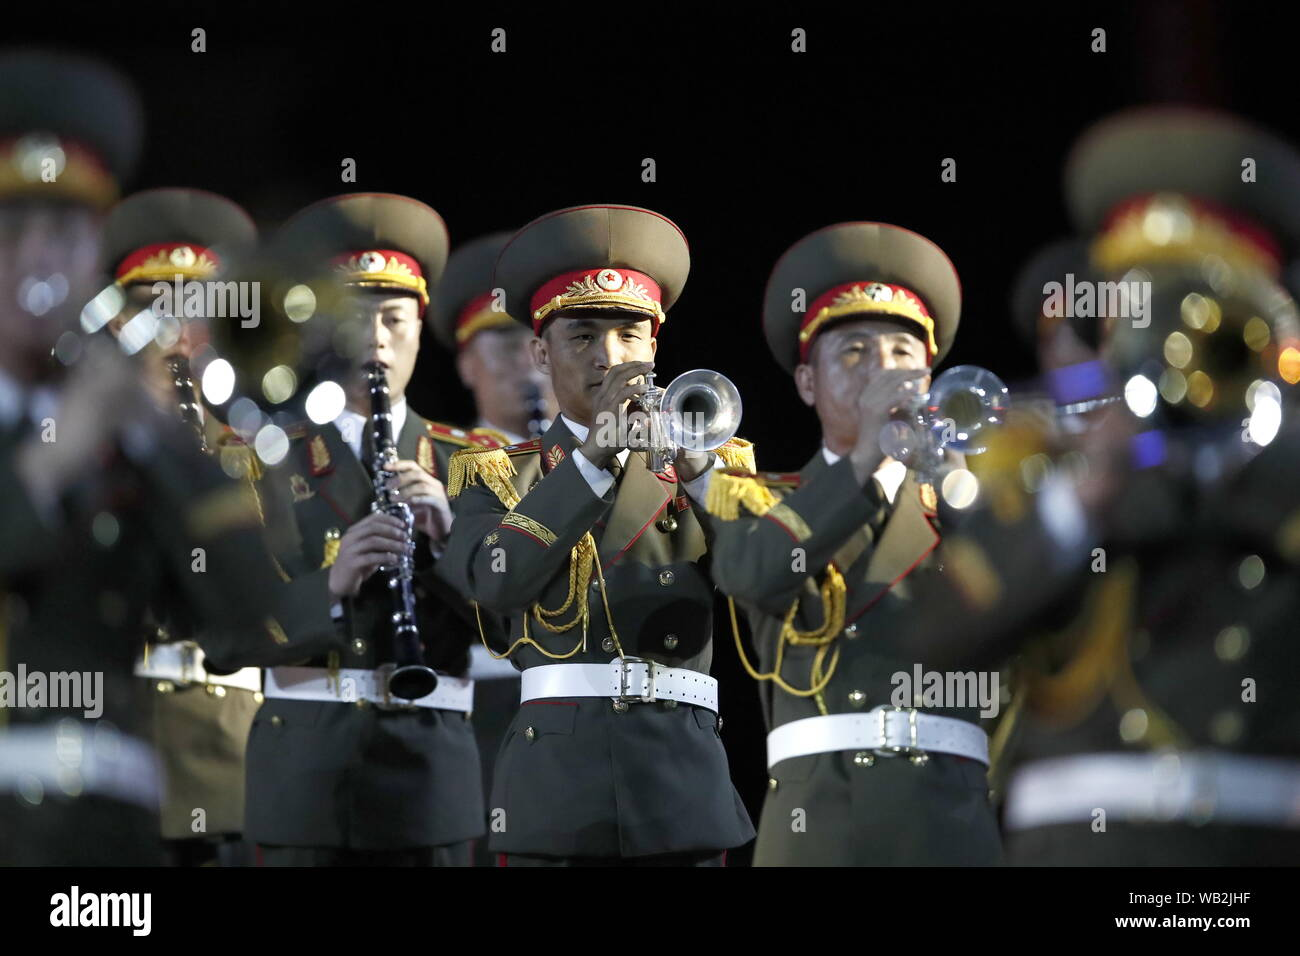 Moscow, Russia. 23rd Aug, 2019. MOSCOW, RUSSIA - AUGUST 23, 2019: Members of the Military Band of the Korean People's Army of North Korea perform during the opening ceremony of the 12th Spasskaya Tower International Military Music Festival in Red Square. Artyom Geodakyan/TASS Credit: ITAR-TASS News Agency/Alamy Live News Stock Photo